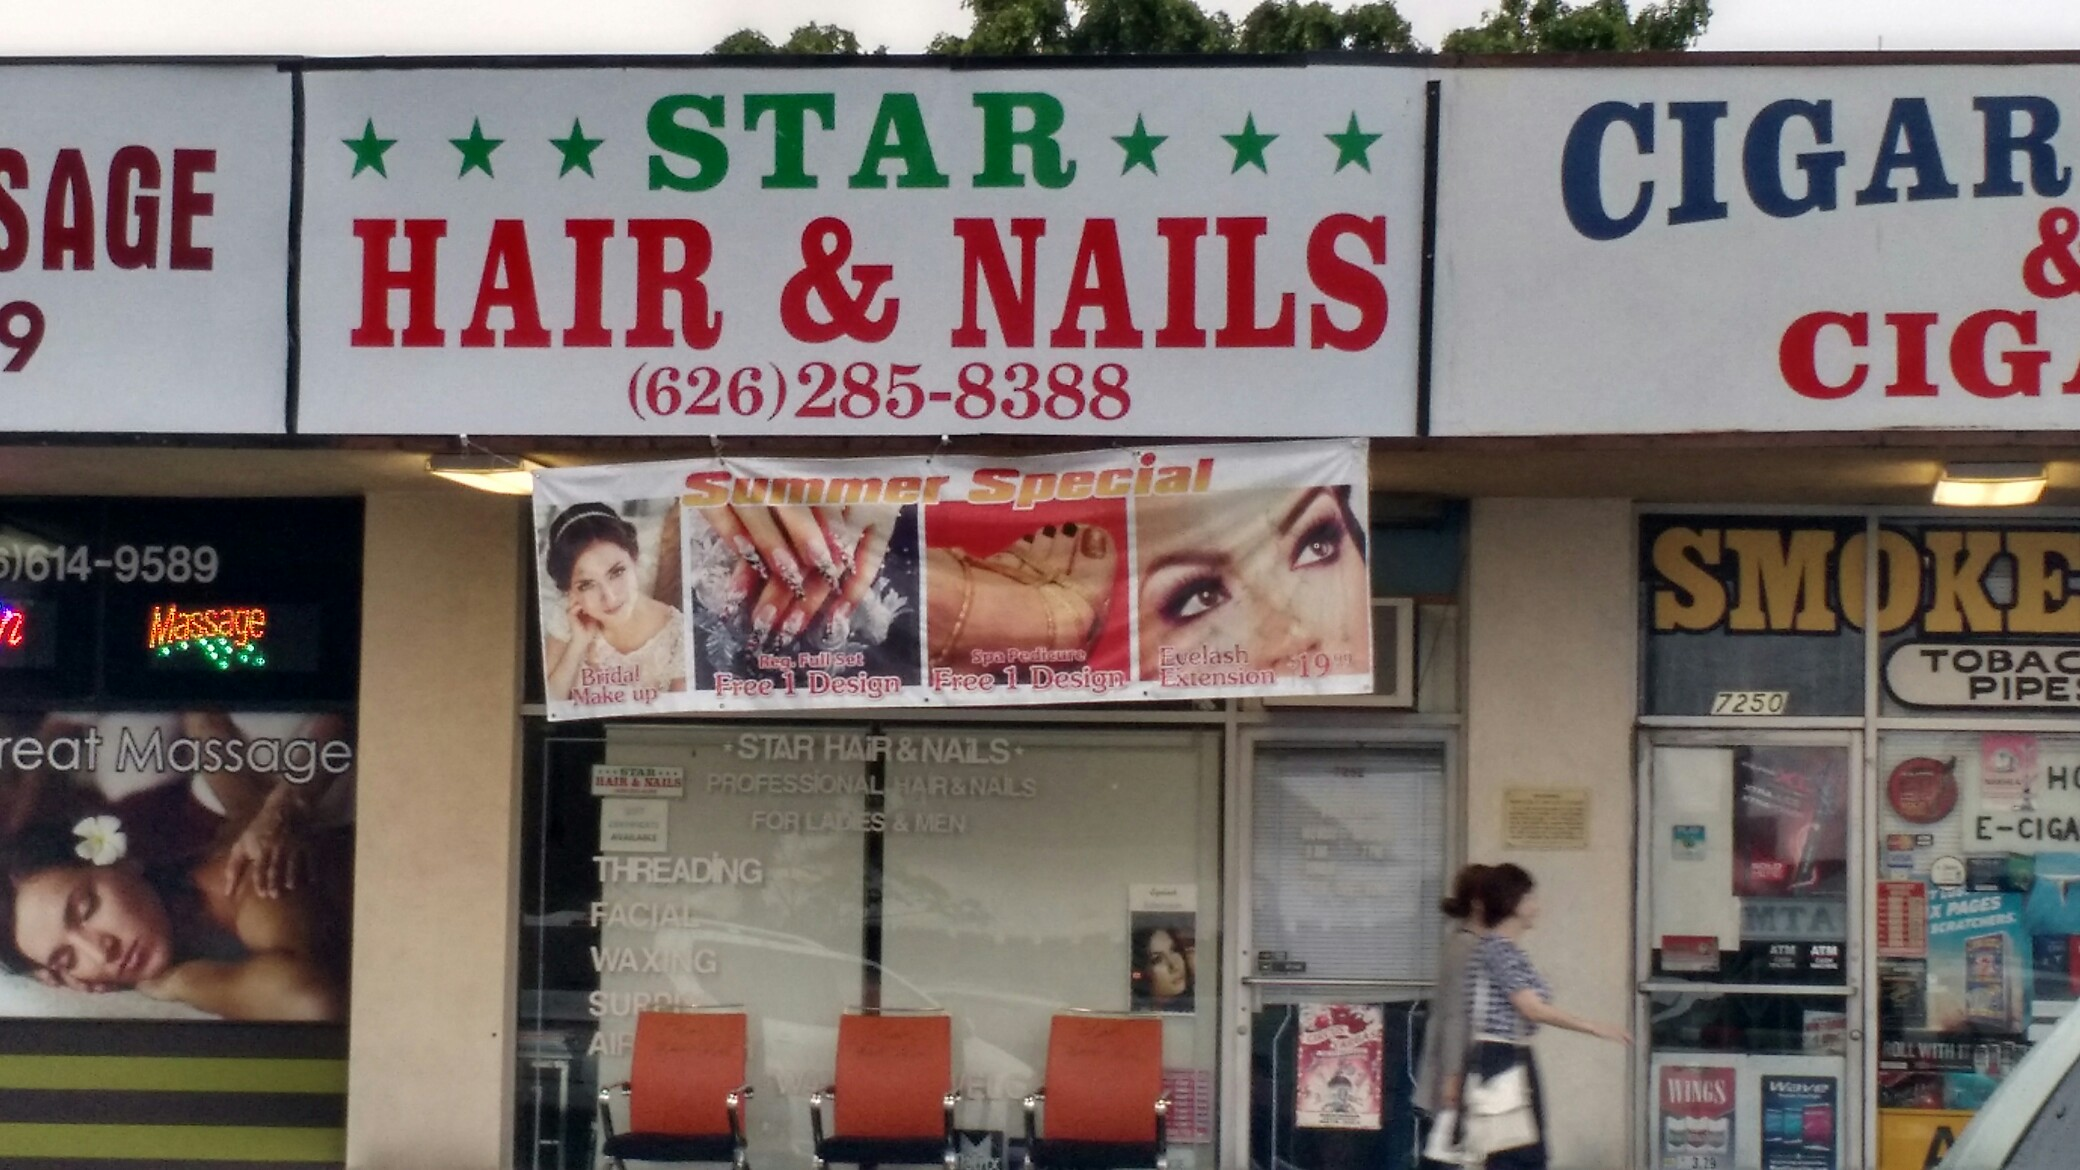 Star Hair & Nails 7252 Rosemead Blvd, San Gabriel, CA 91775